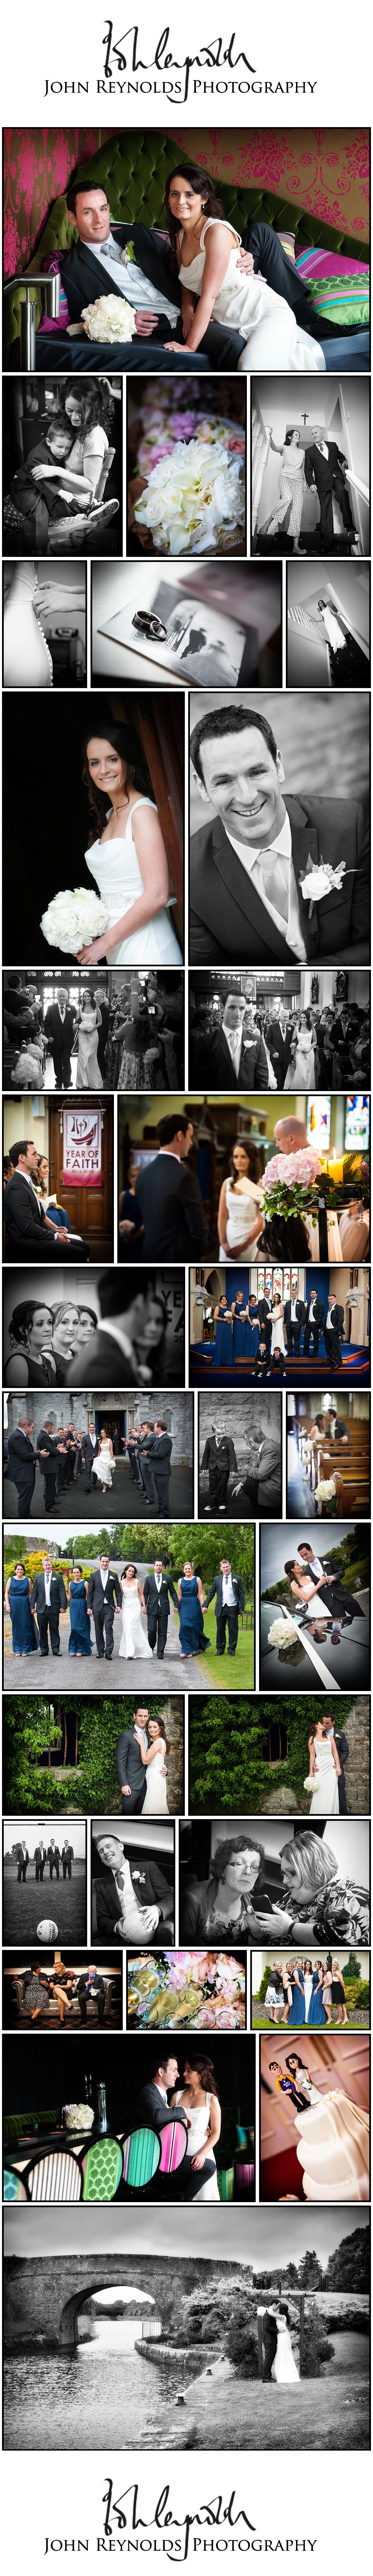 Ann & John Blog Collage